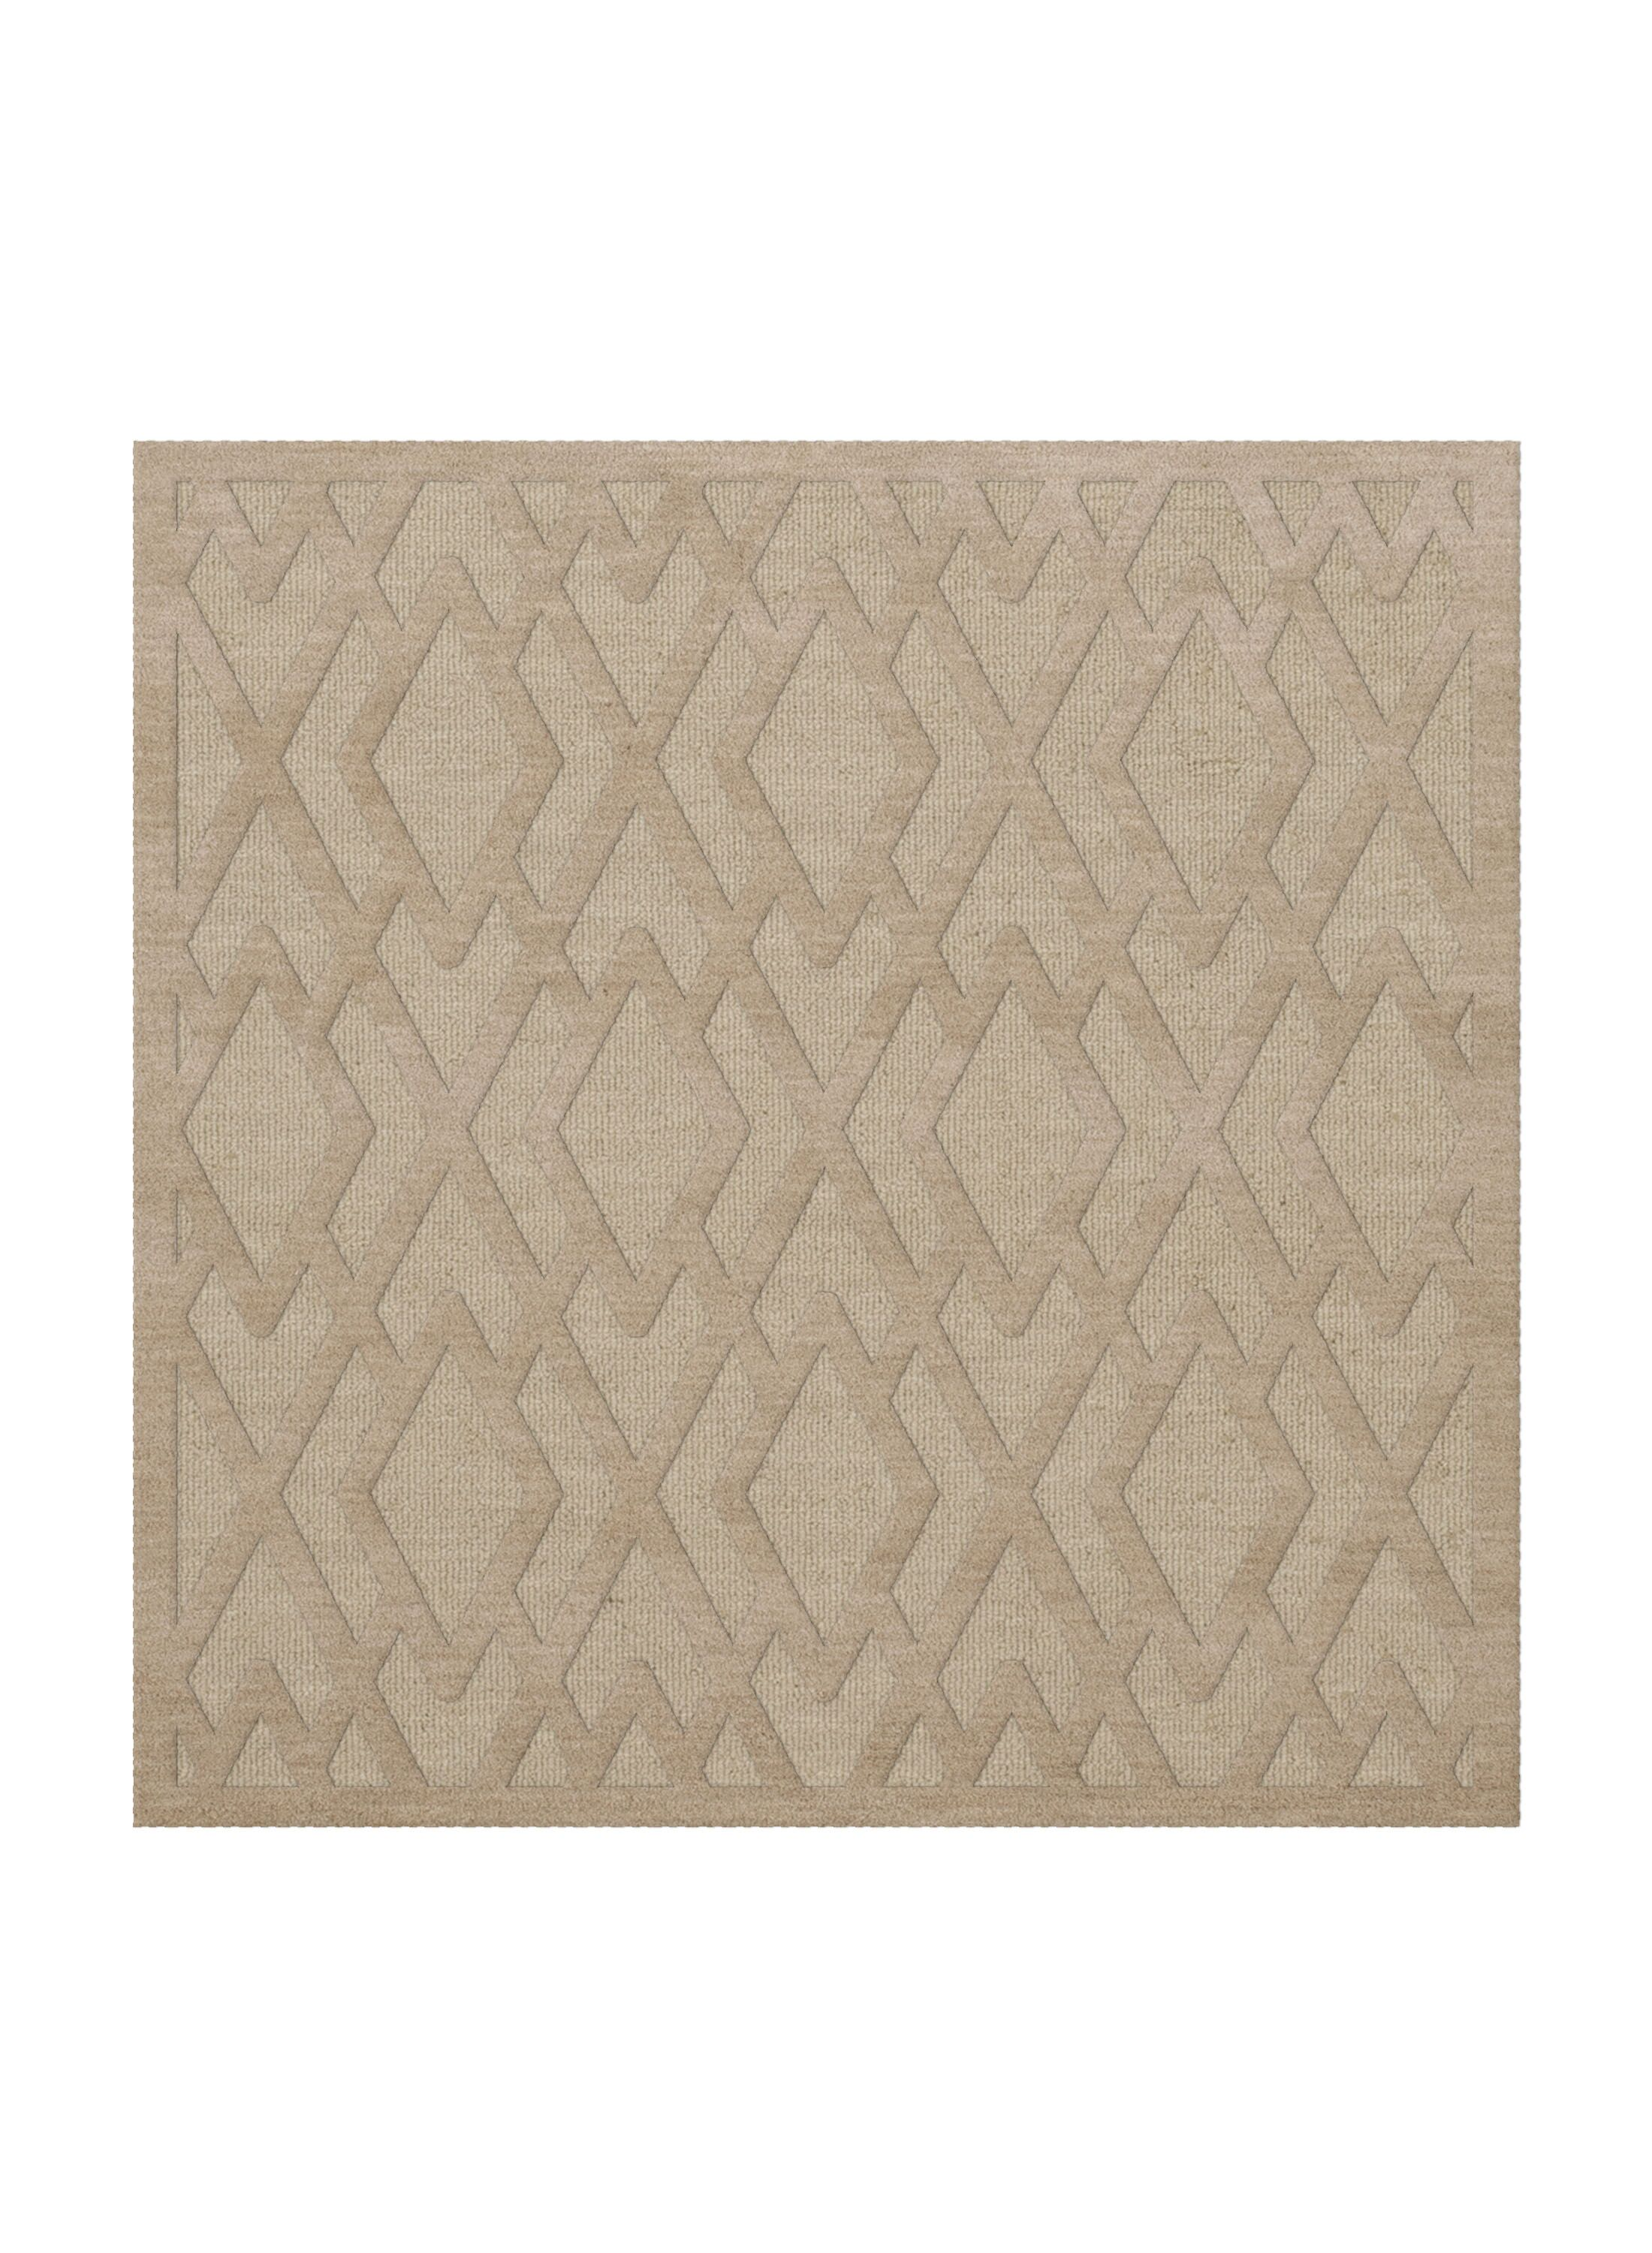 Dover Tufted Wool Linen Area Rug Rug Size: Square 4'